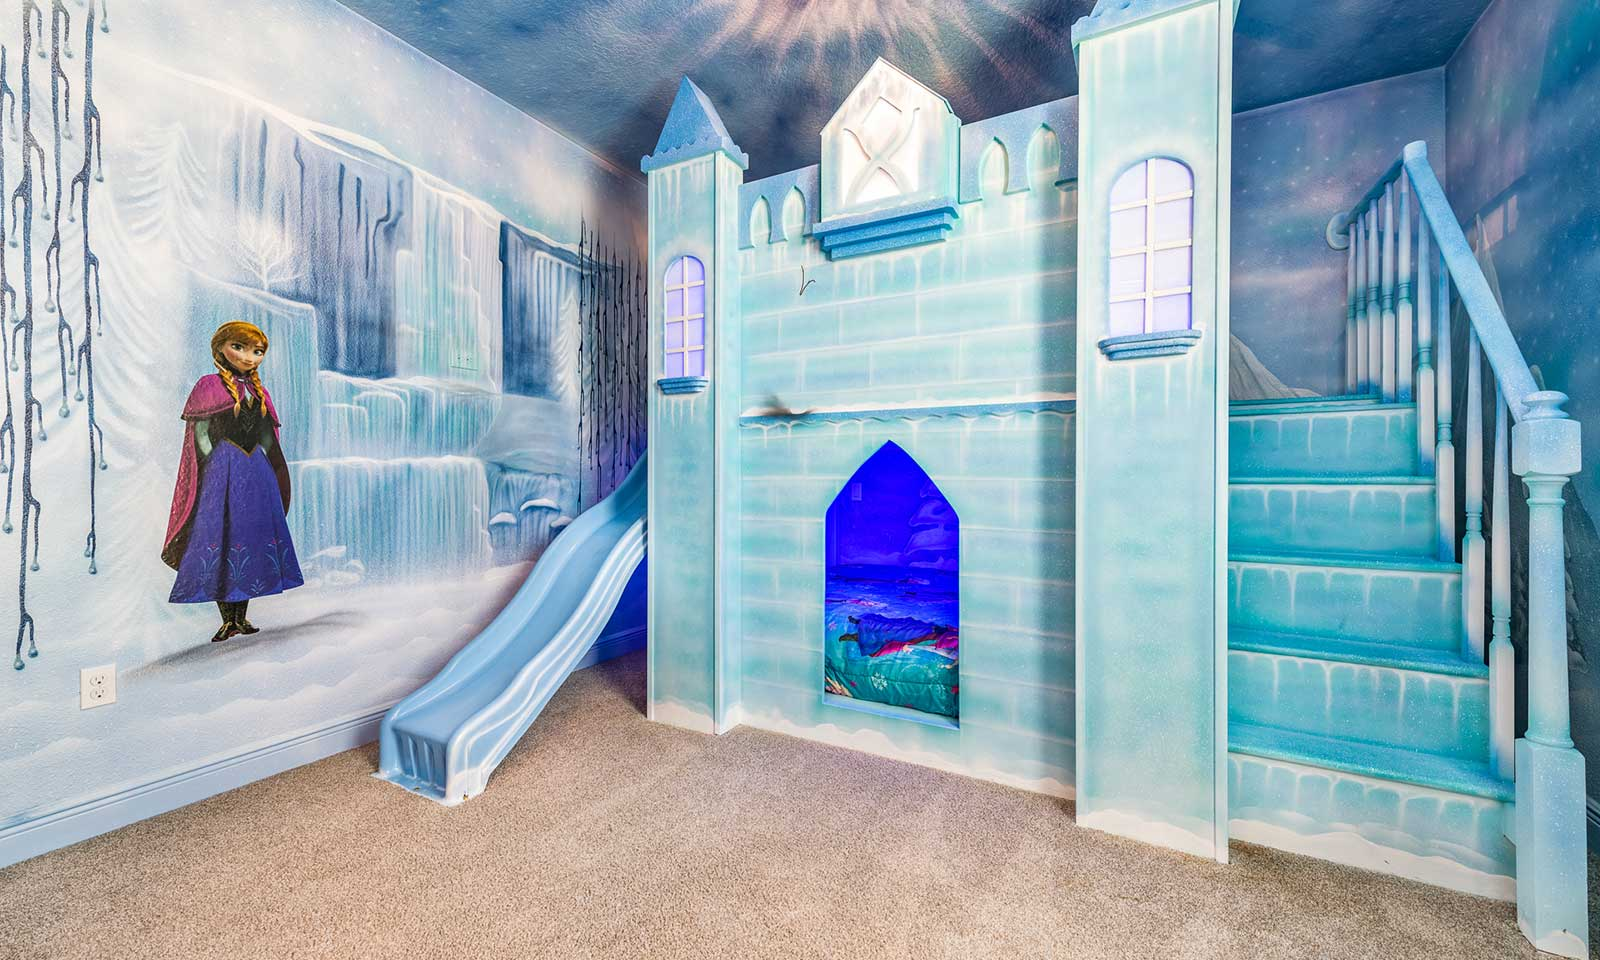 The Icy Themed Villa-181183